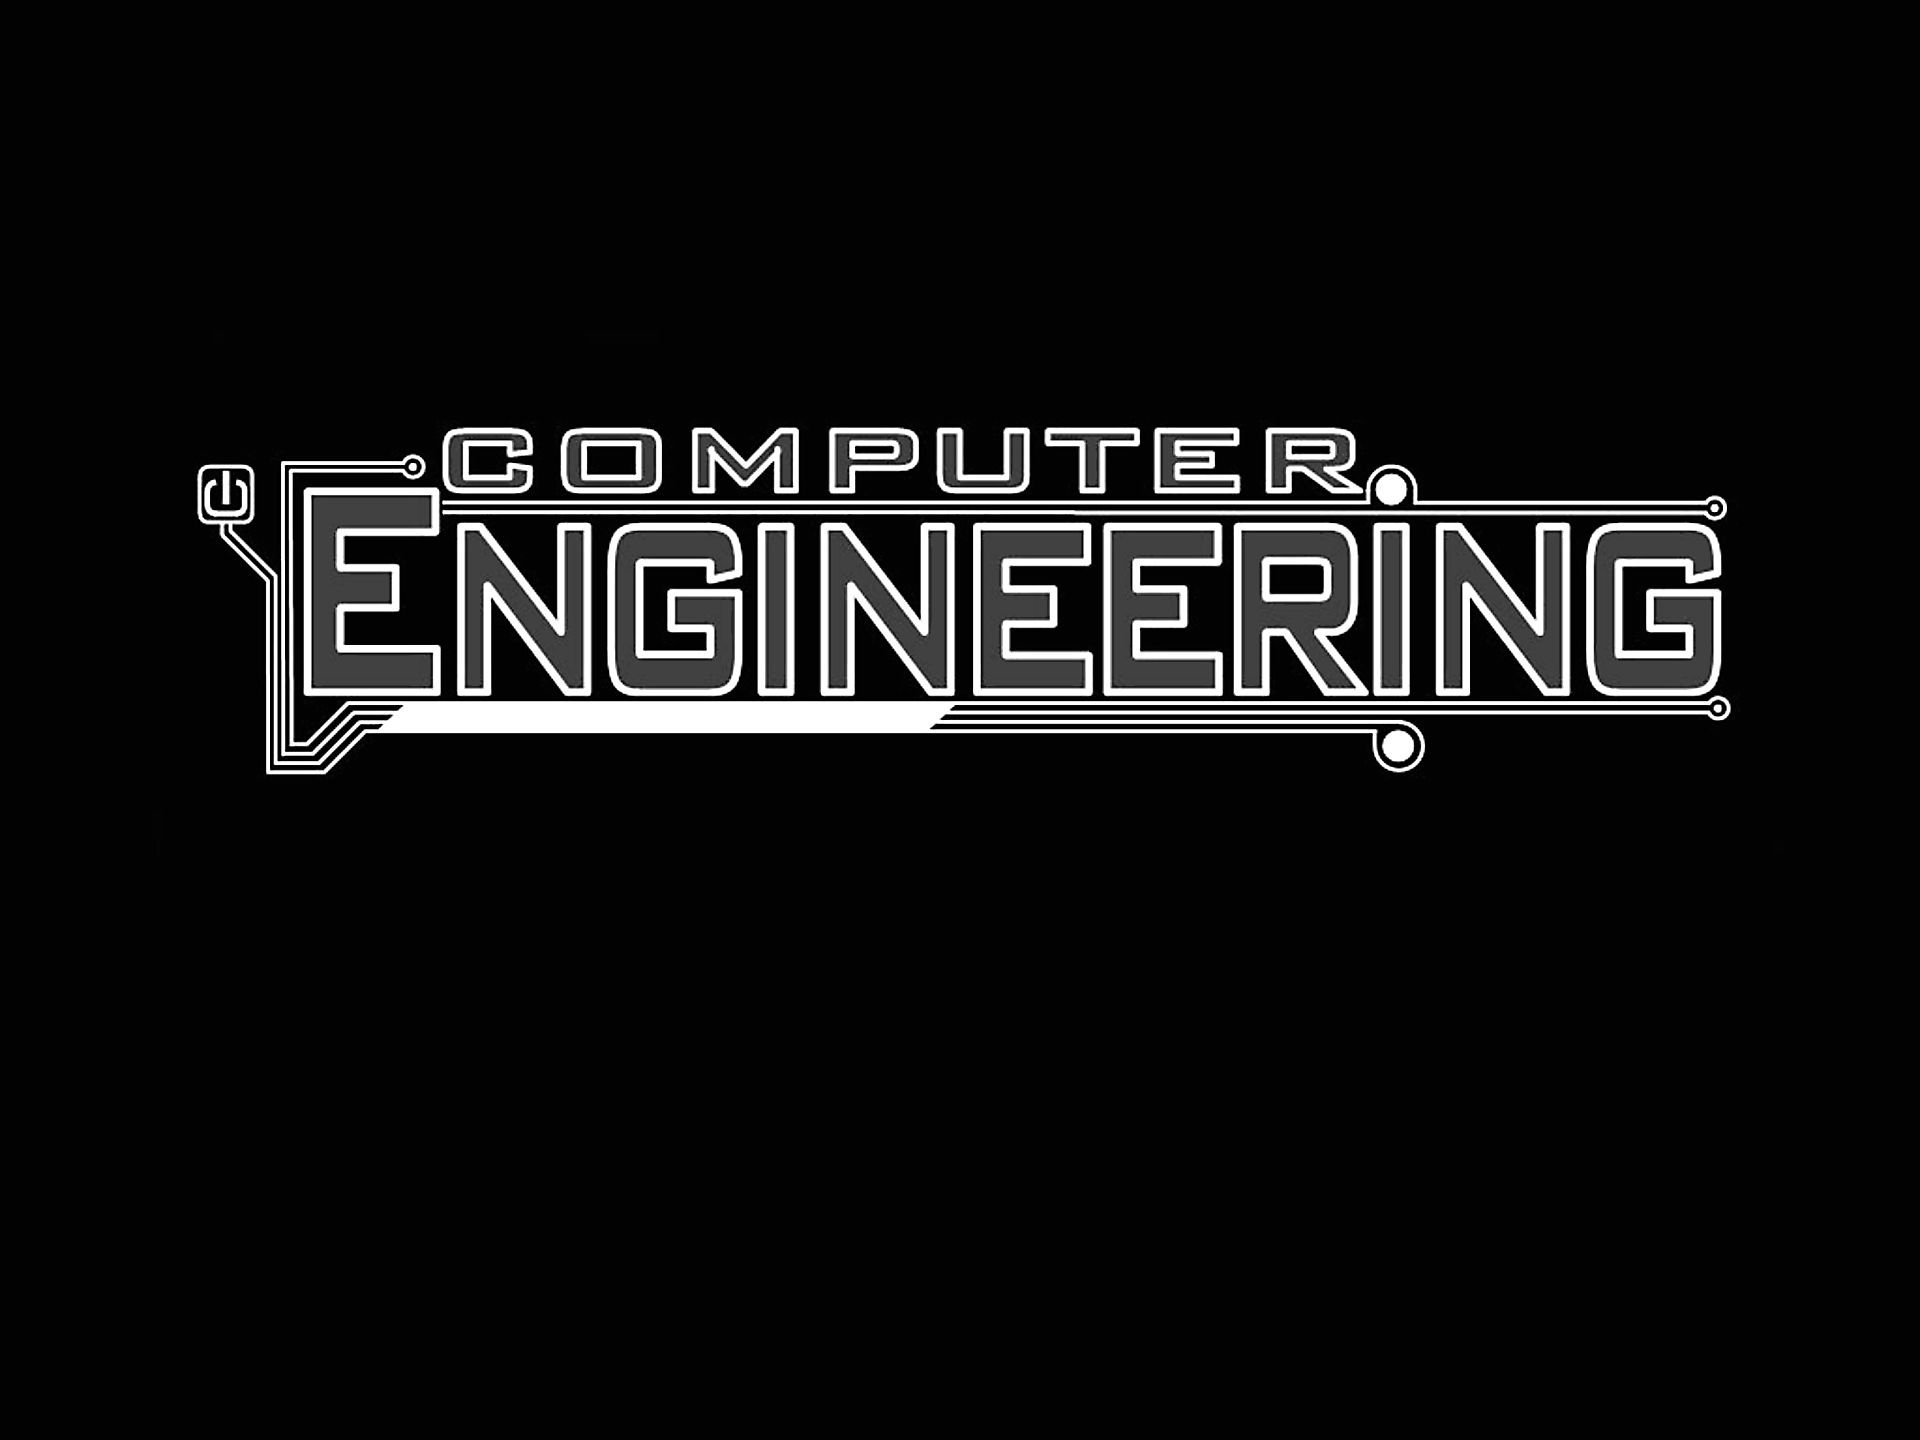 Engineering Wallpaper Images for Computer - WallpaperSafari Computer Science Engineering Images